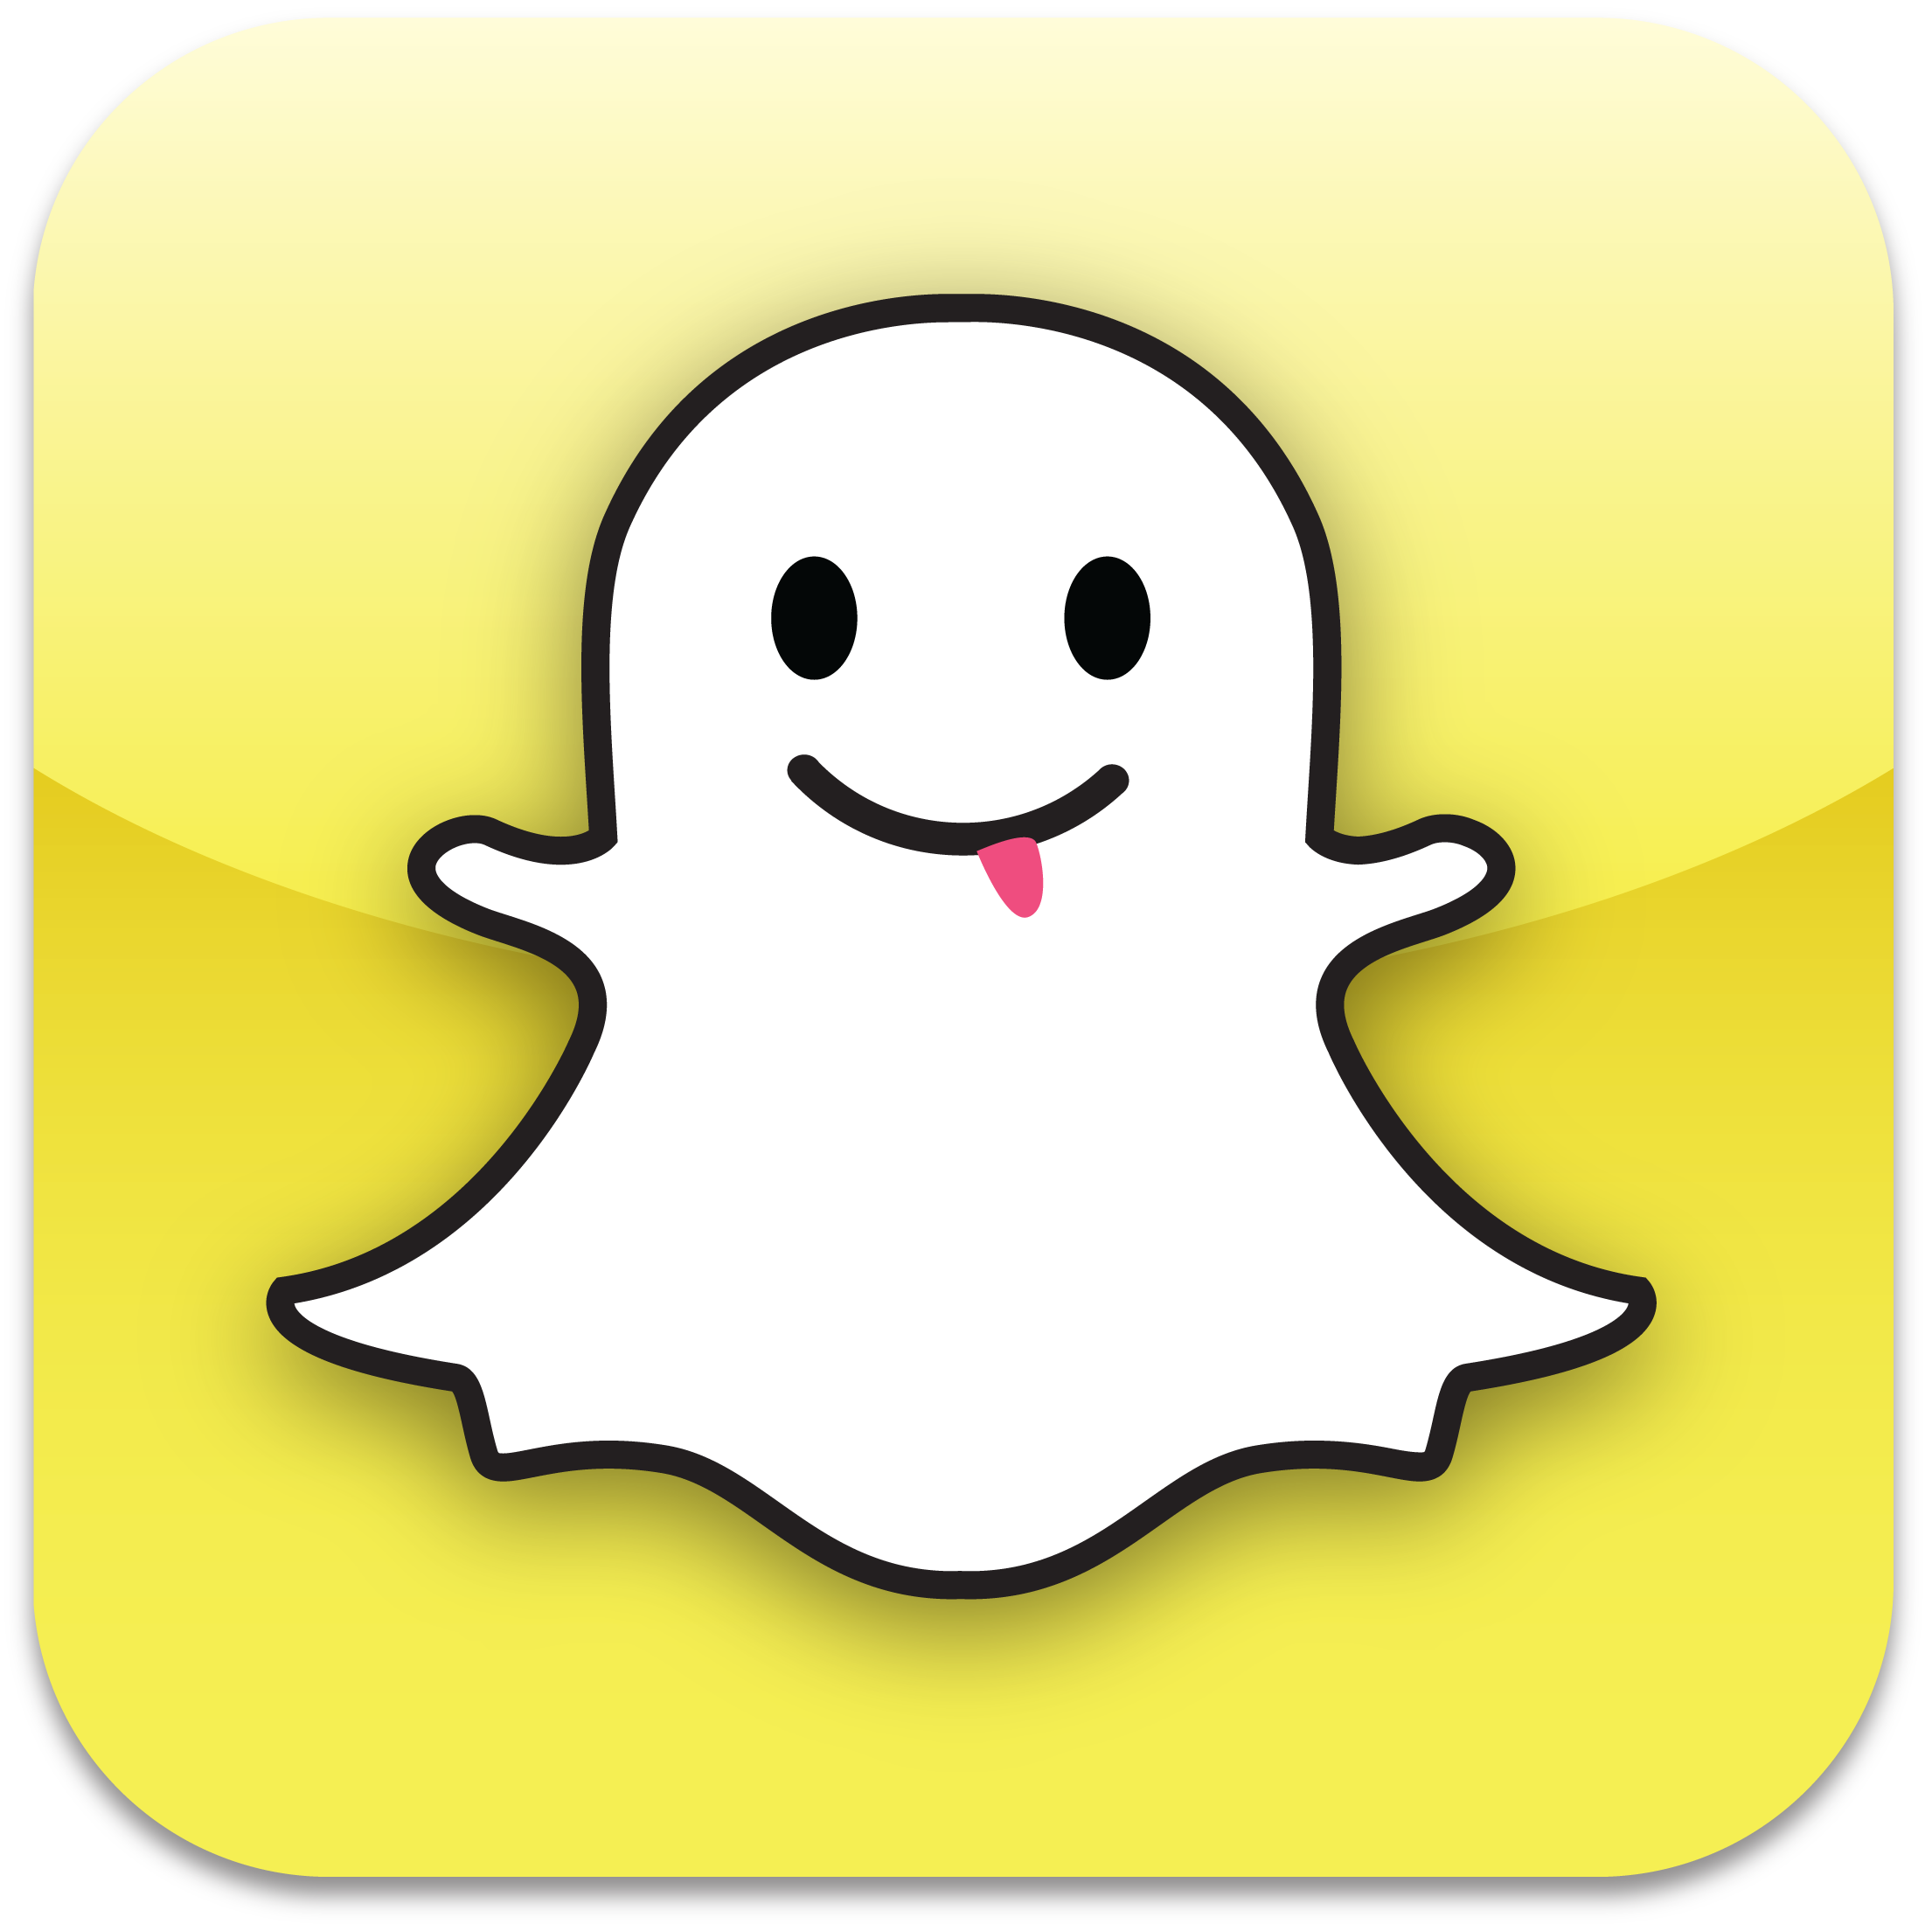 11 Snapchat App Icon Images